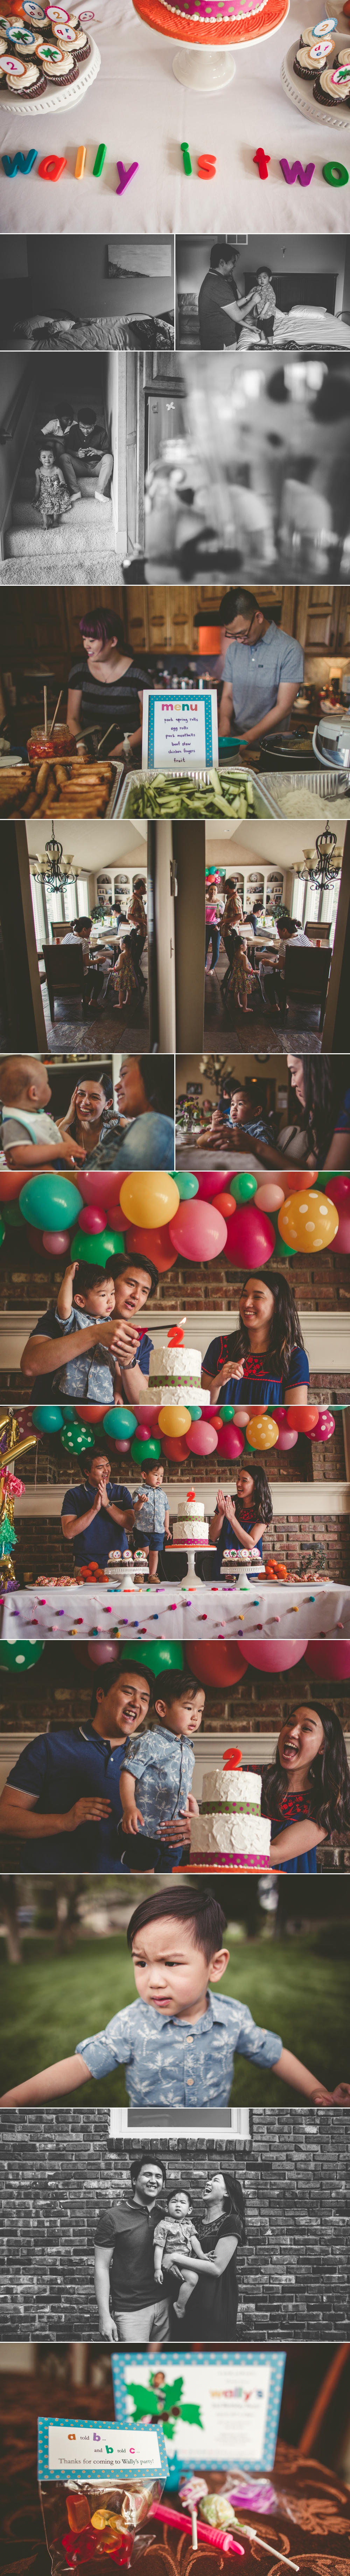 jason_domingues_photography_best_kansas_city_photographer_family_photos_birthday_party_lifestyle_photography_kc.jpg